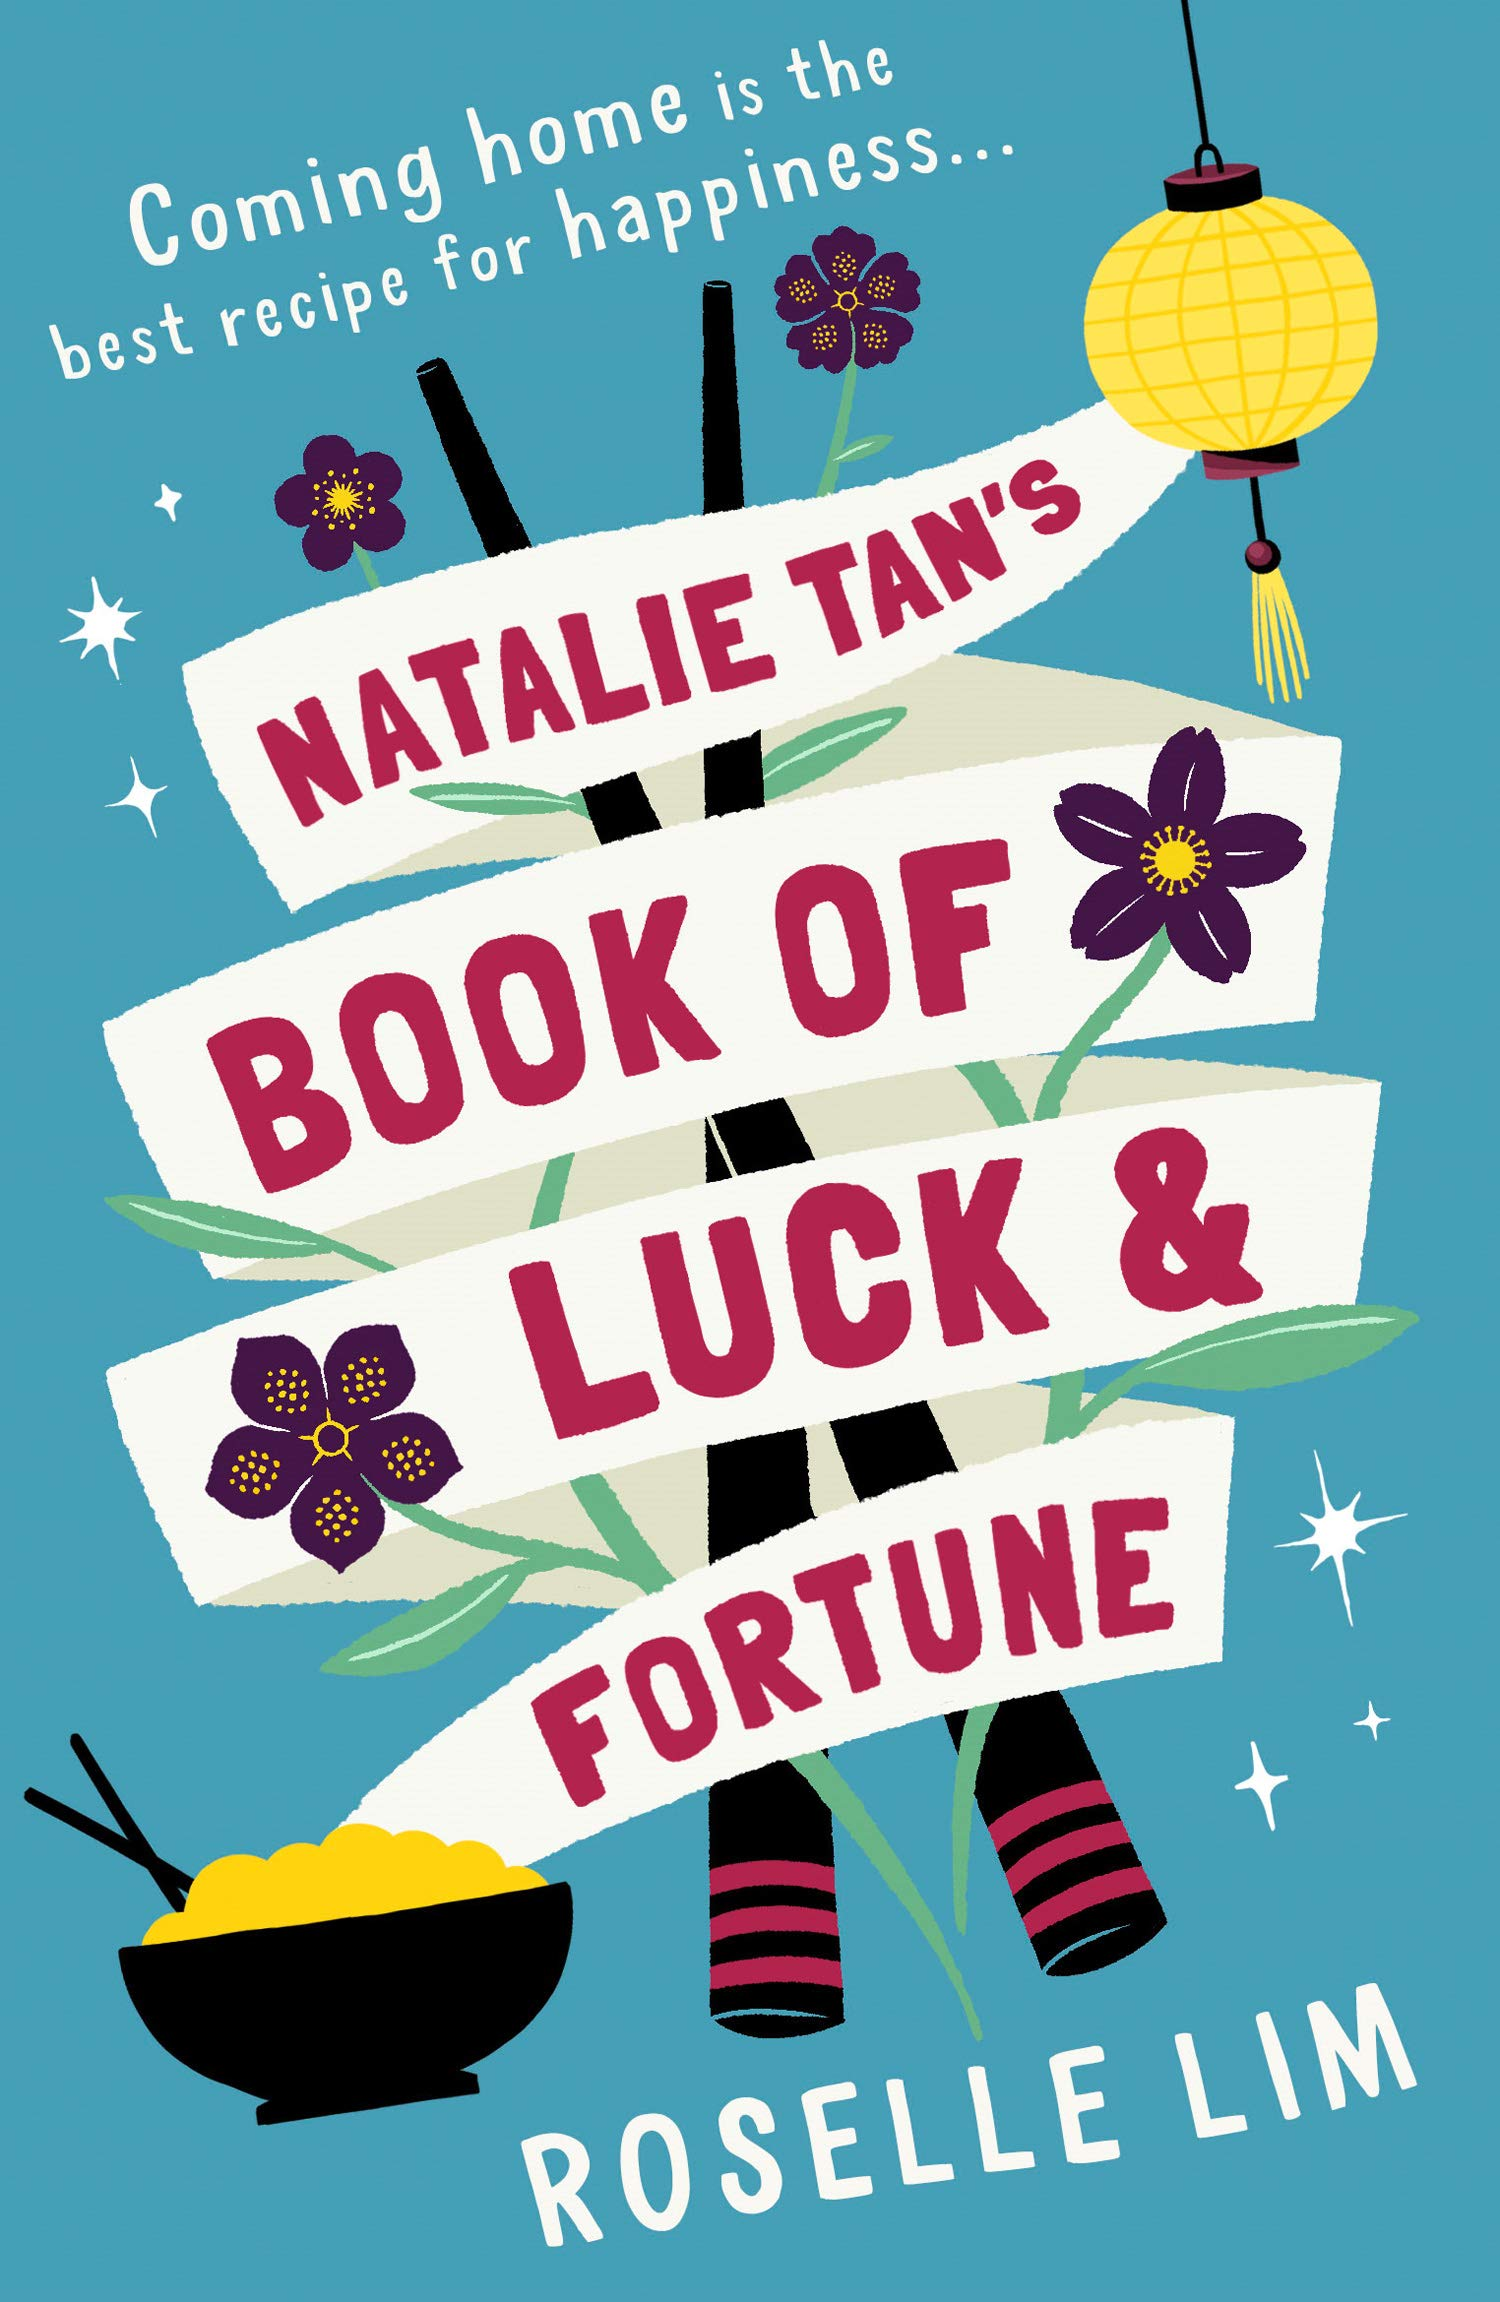 Natalie Tan's Book of Luck and Fortune: The most heartwarming, romantic  page-turner for 2020!: Amazon.co.uk: Lim, Roselle: 9780008361853: Books